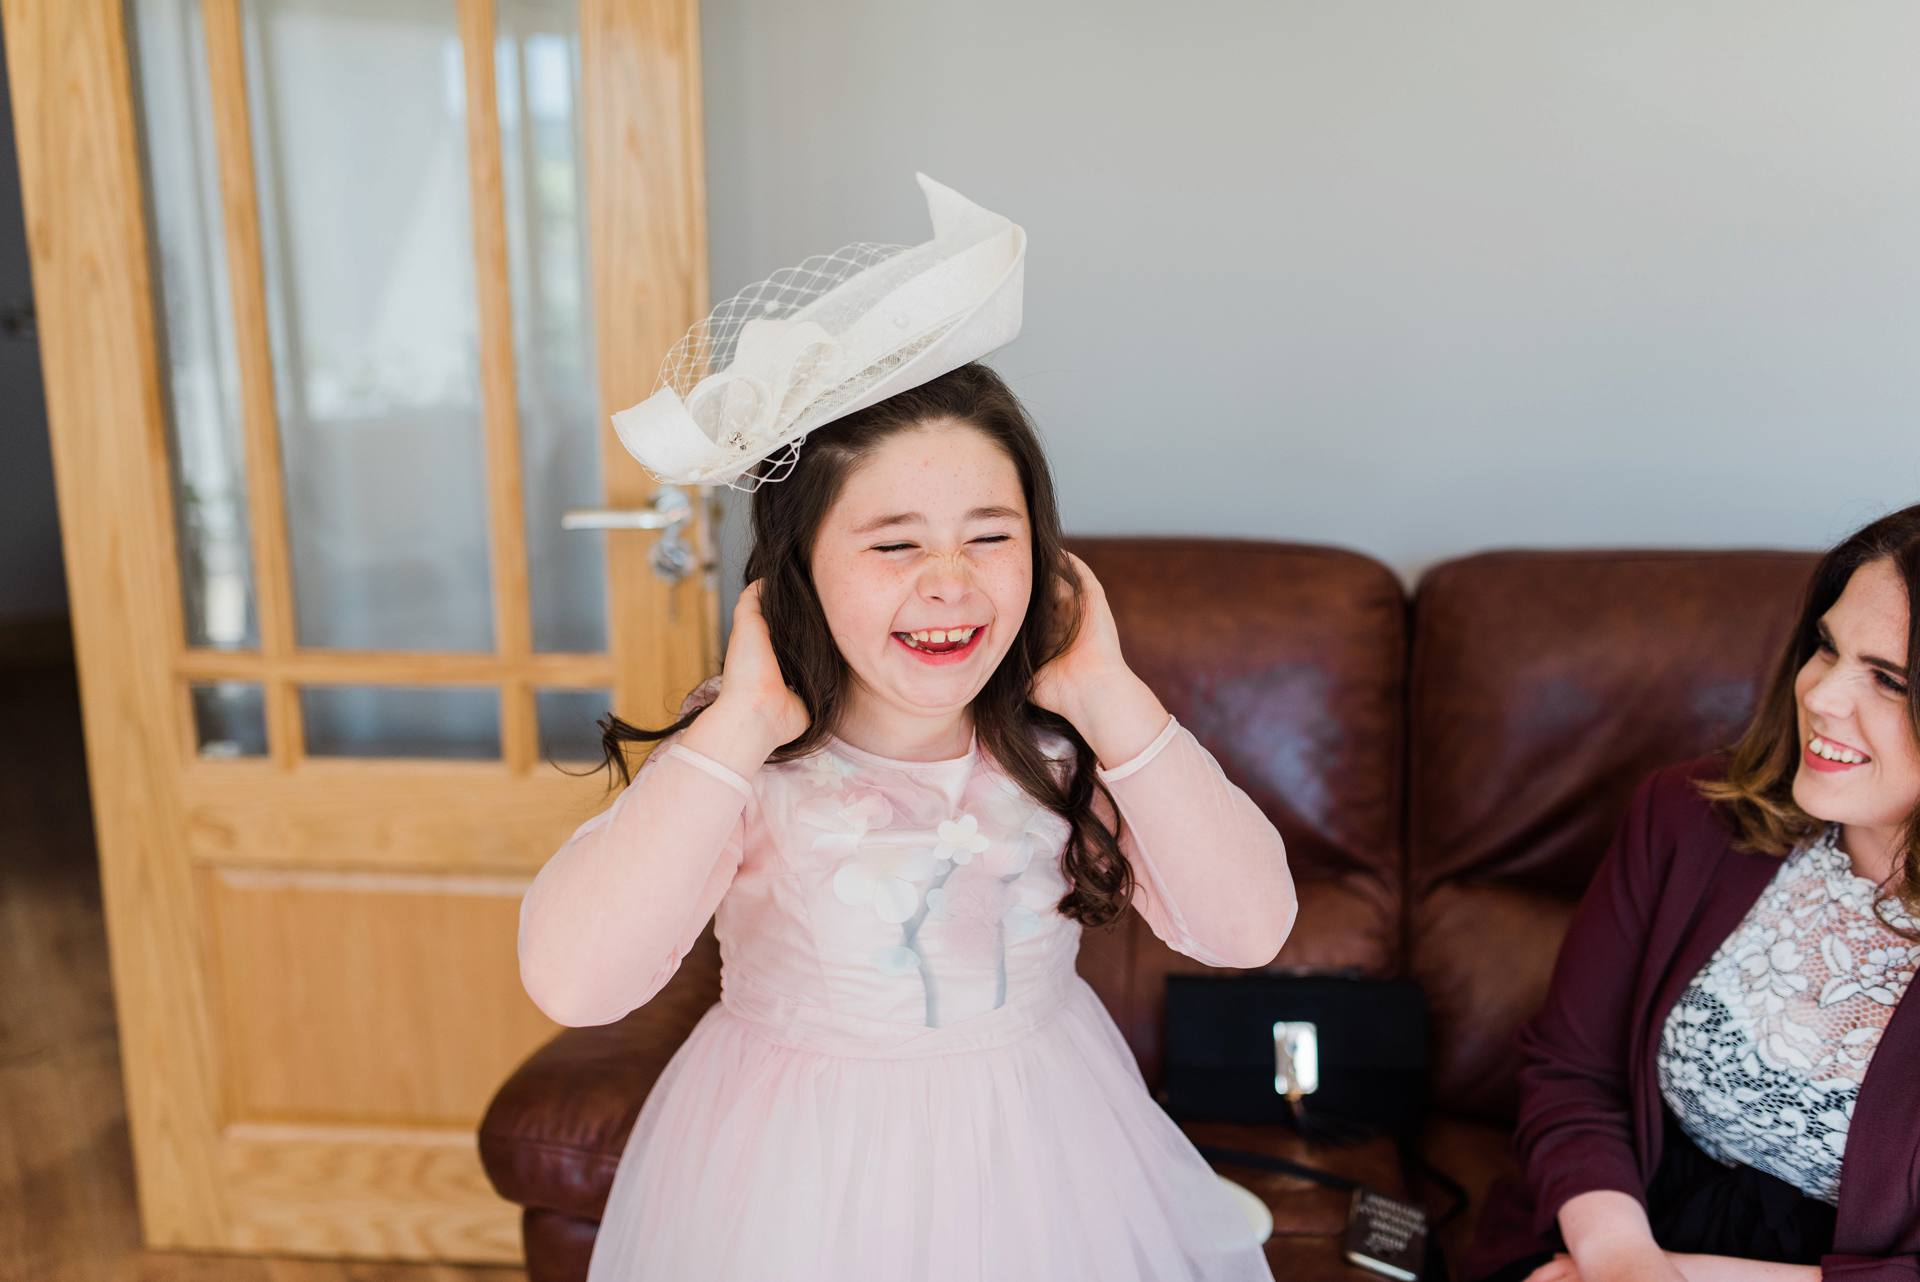 Flower girl trying on a hat and laughing